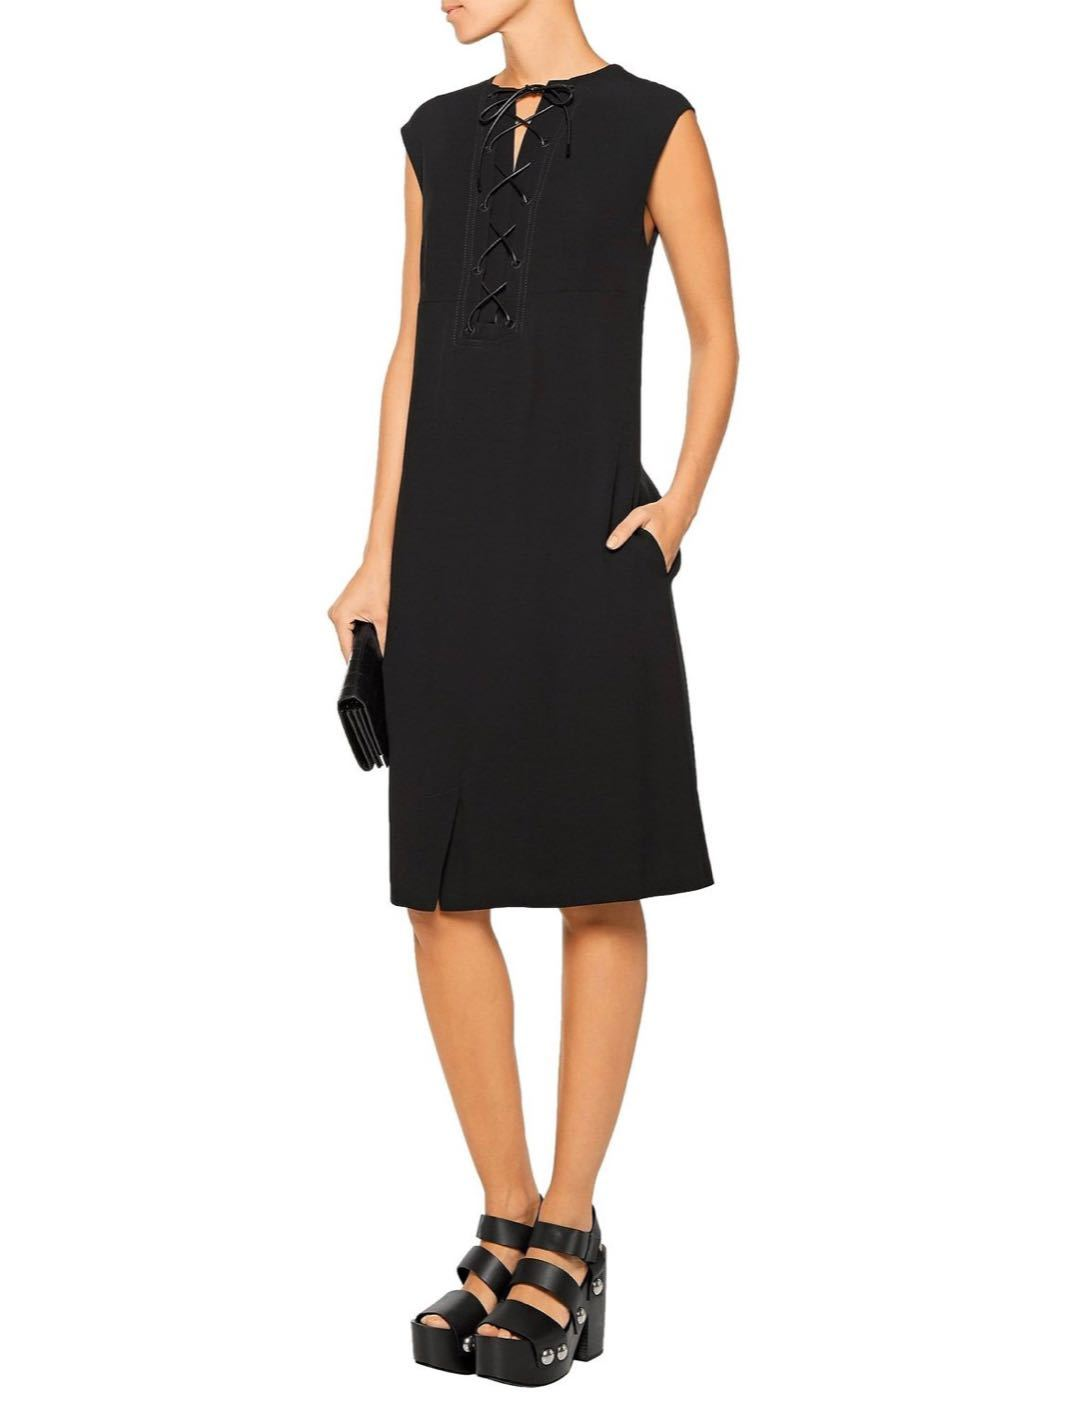 Lace-Up Crepe Dress - The Bobby Boga